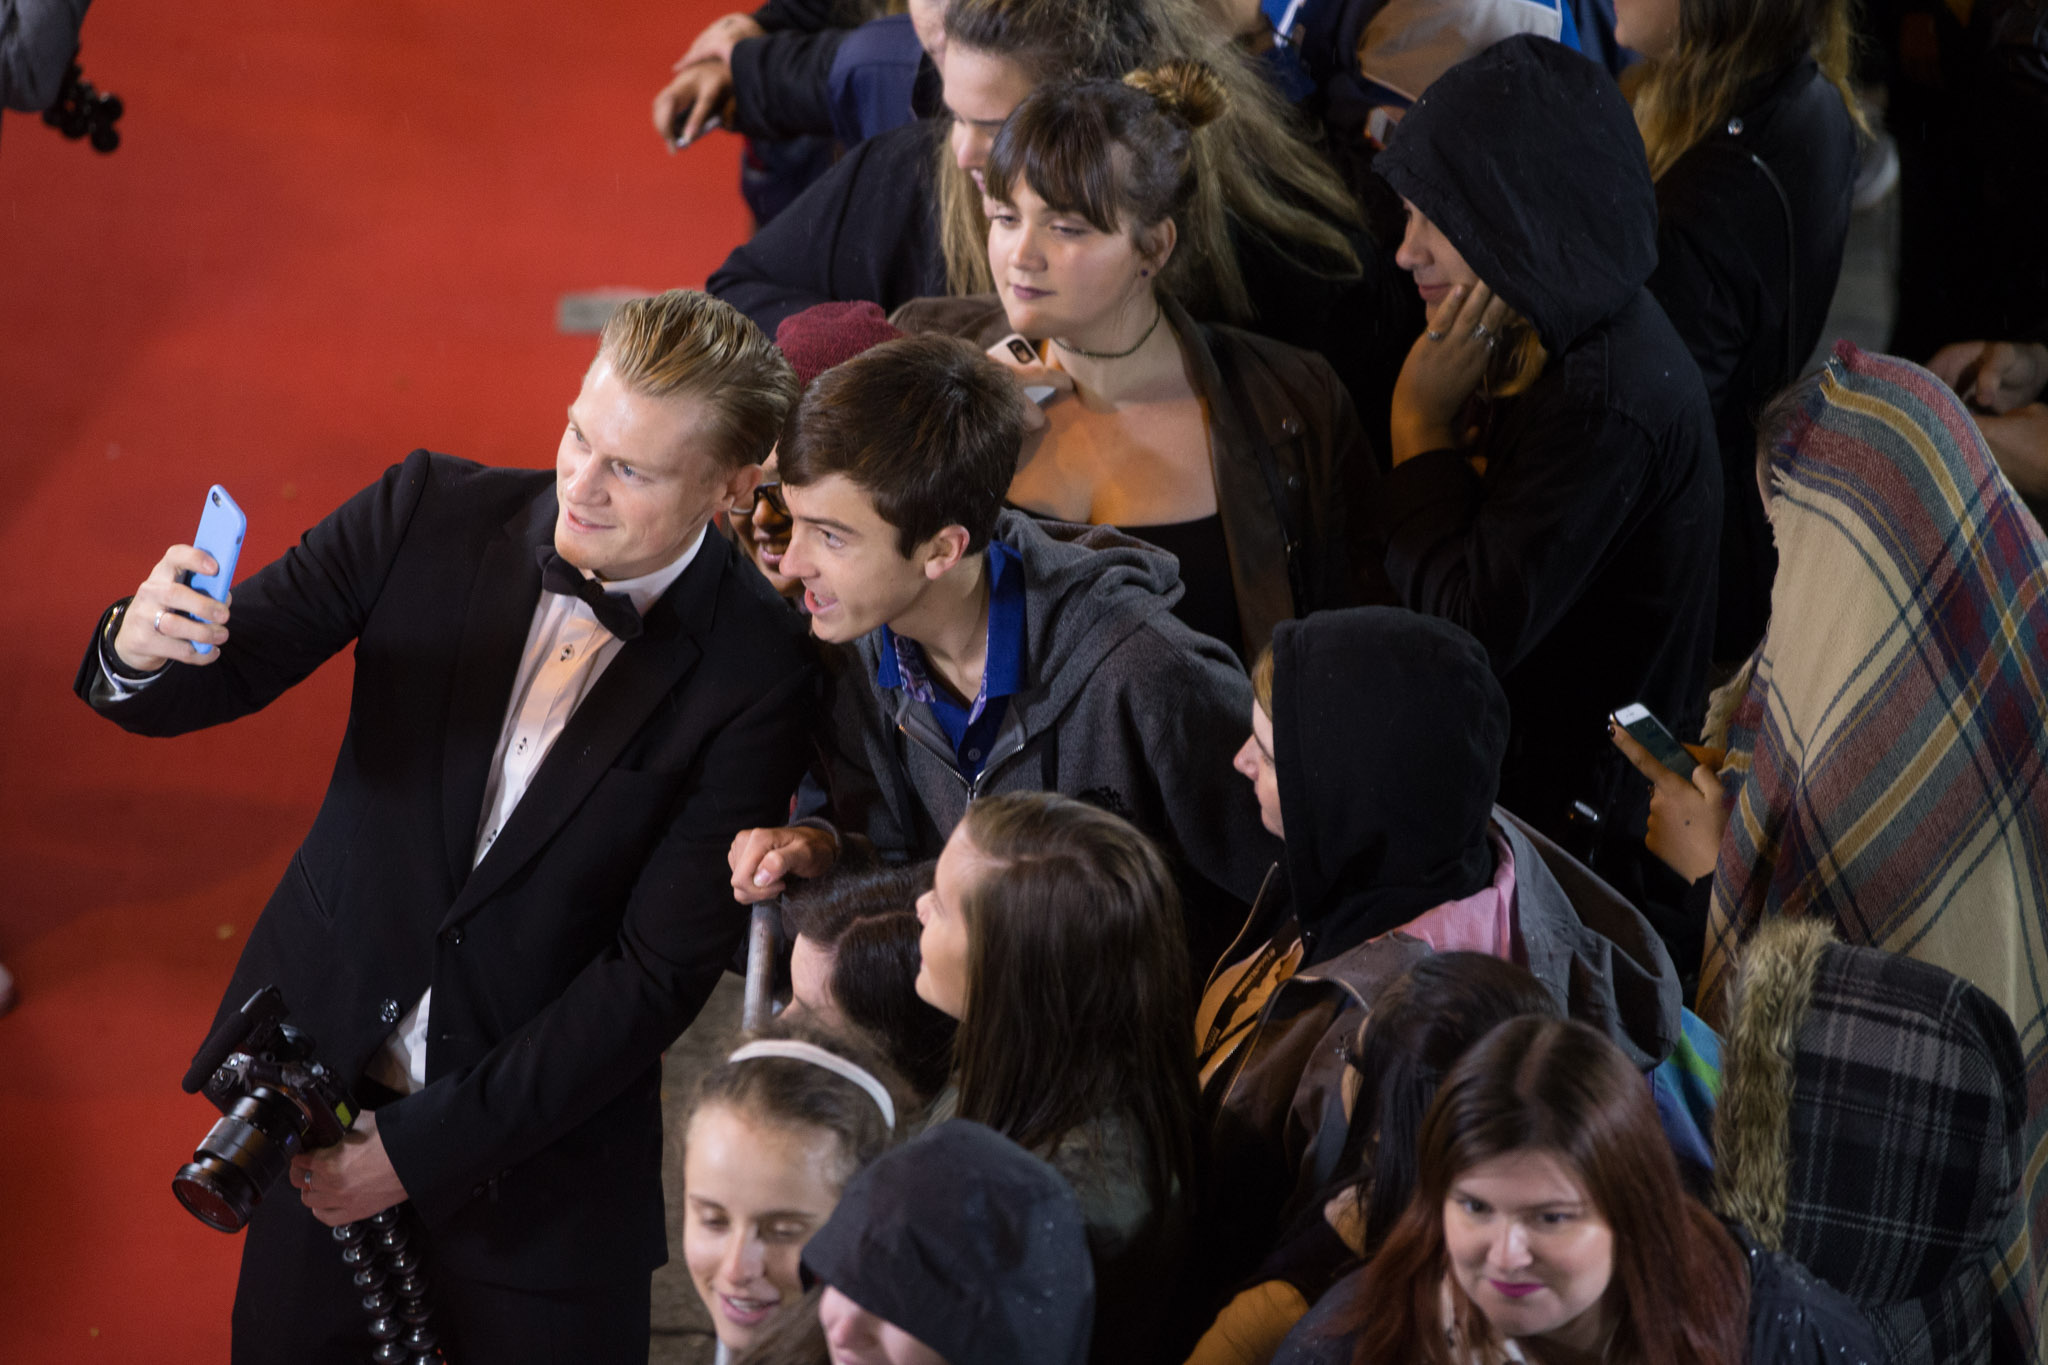 A crowd takes a selfie on the Red Carpet